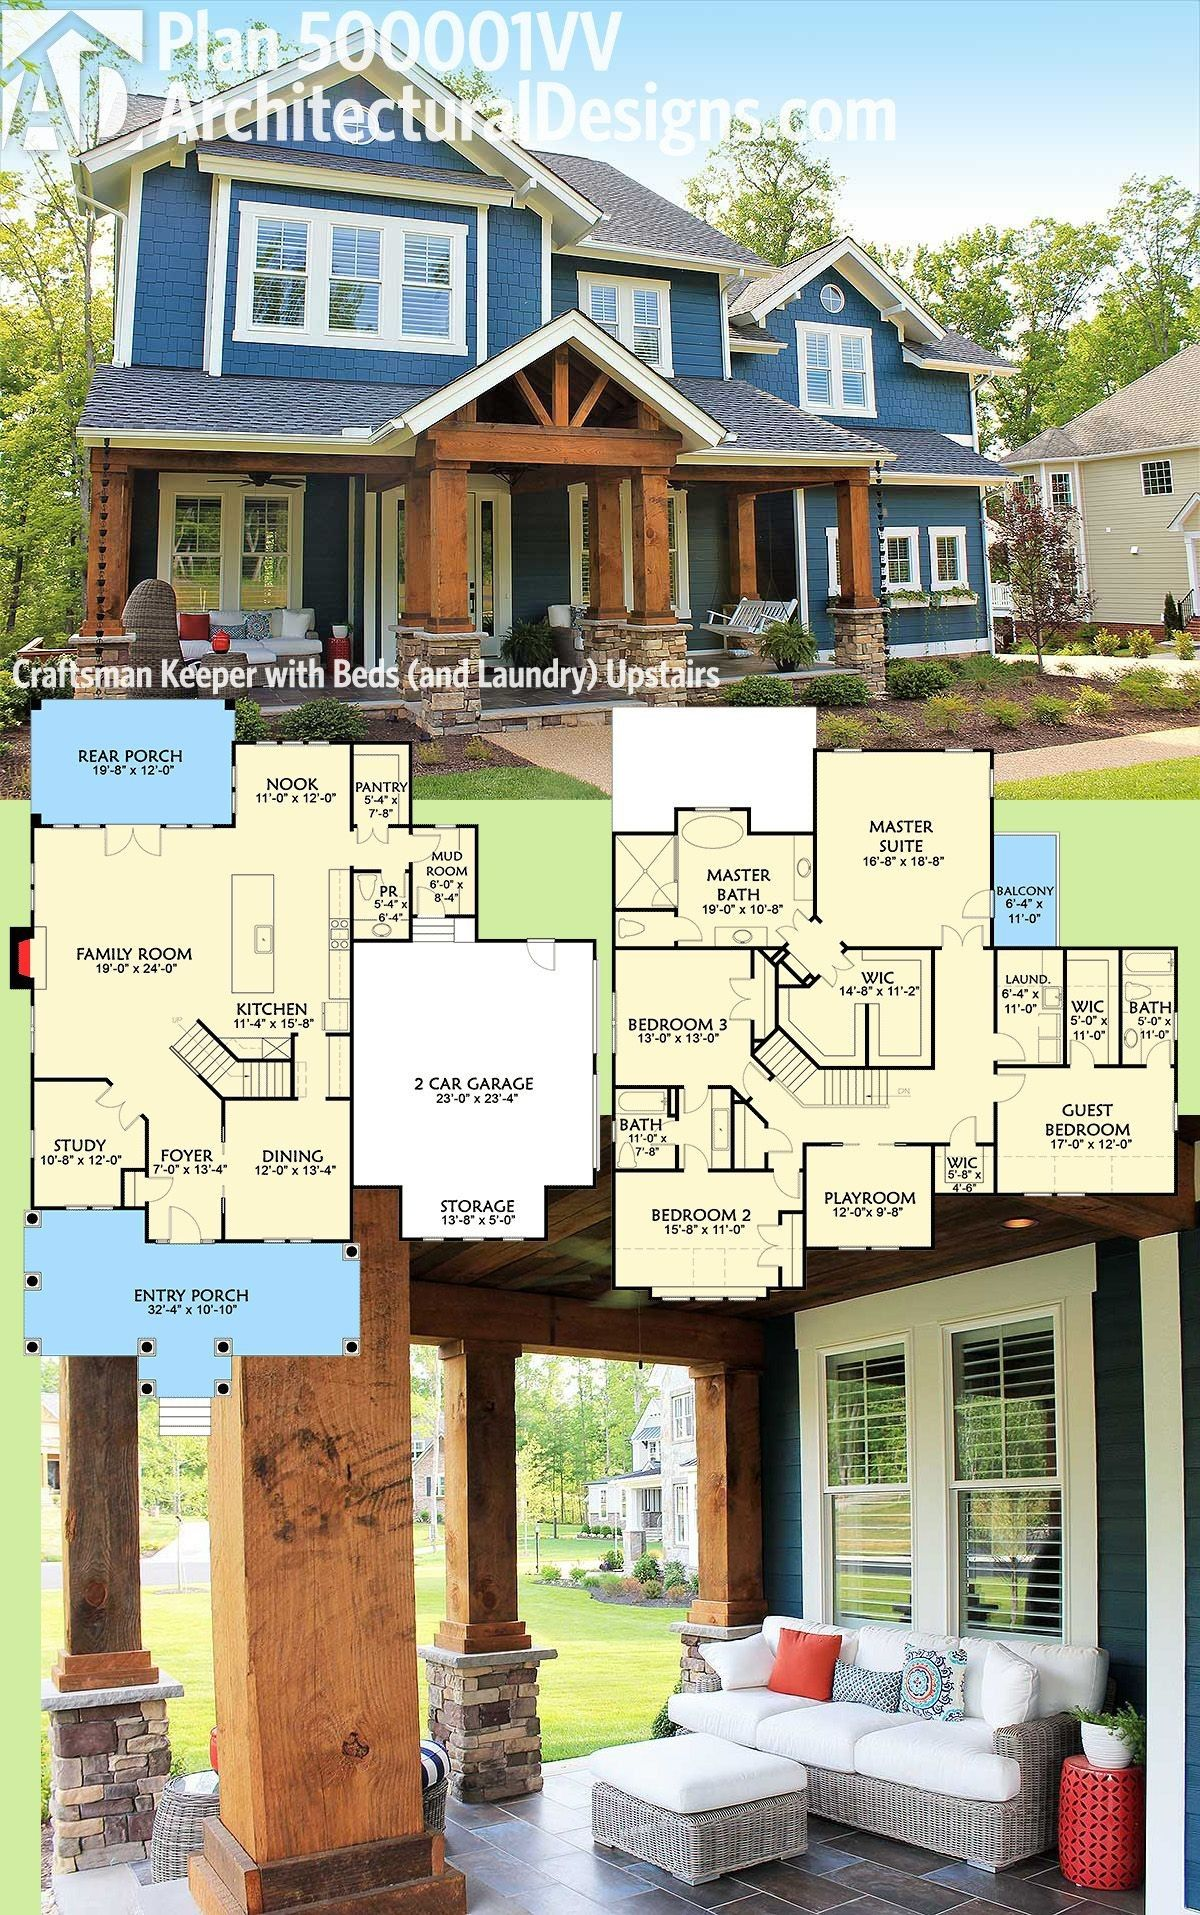 Pin By Jil Arie On Small House Plans Two Bedroom House Ranch Style House Plans Bedroom House Plans